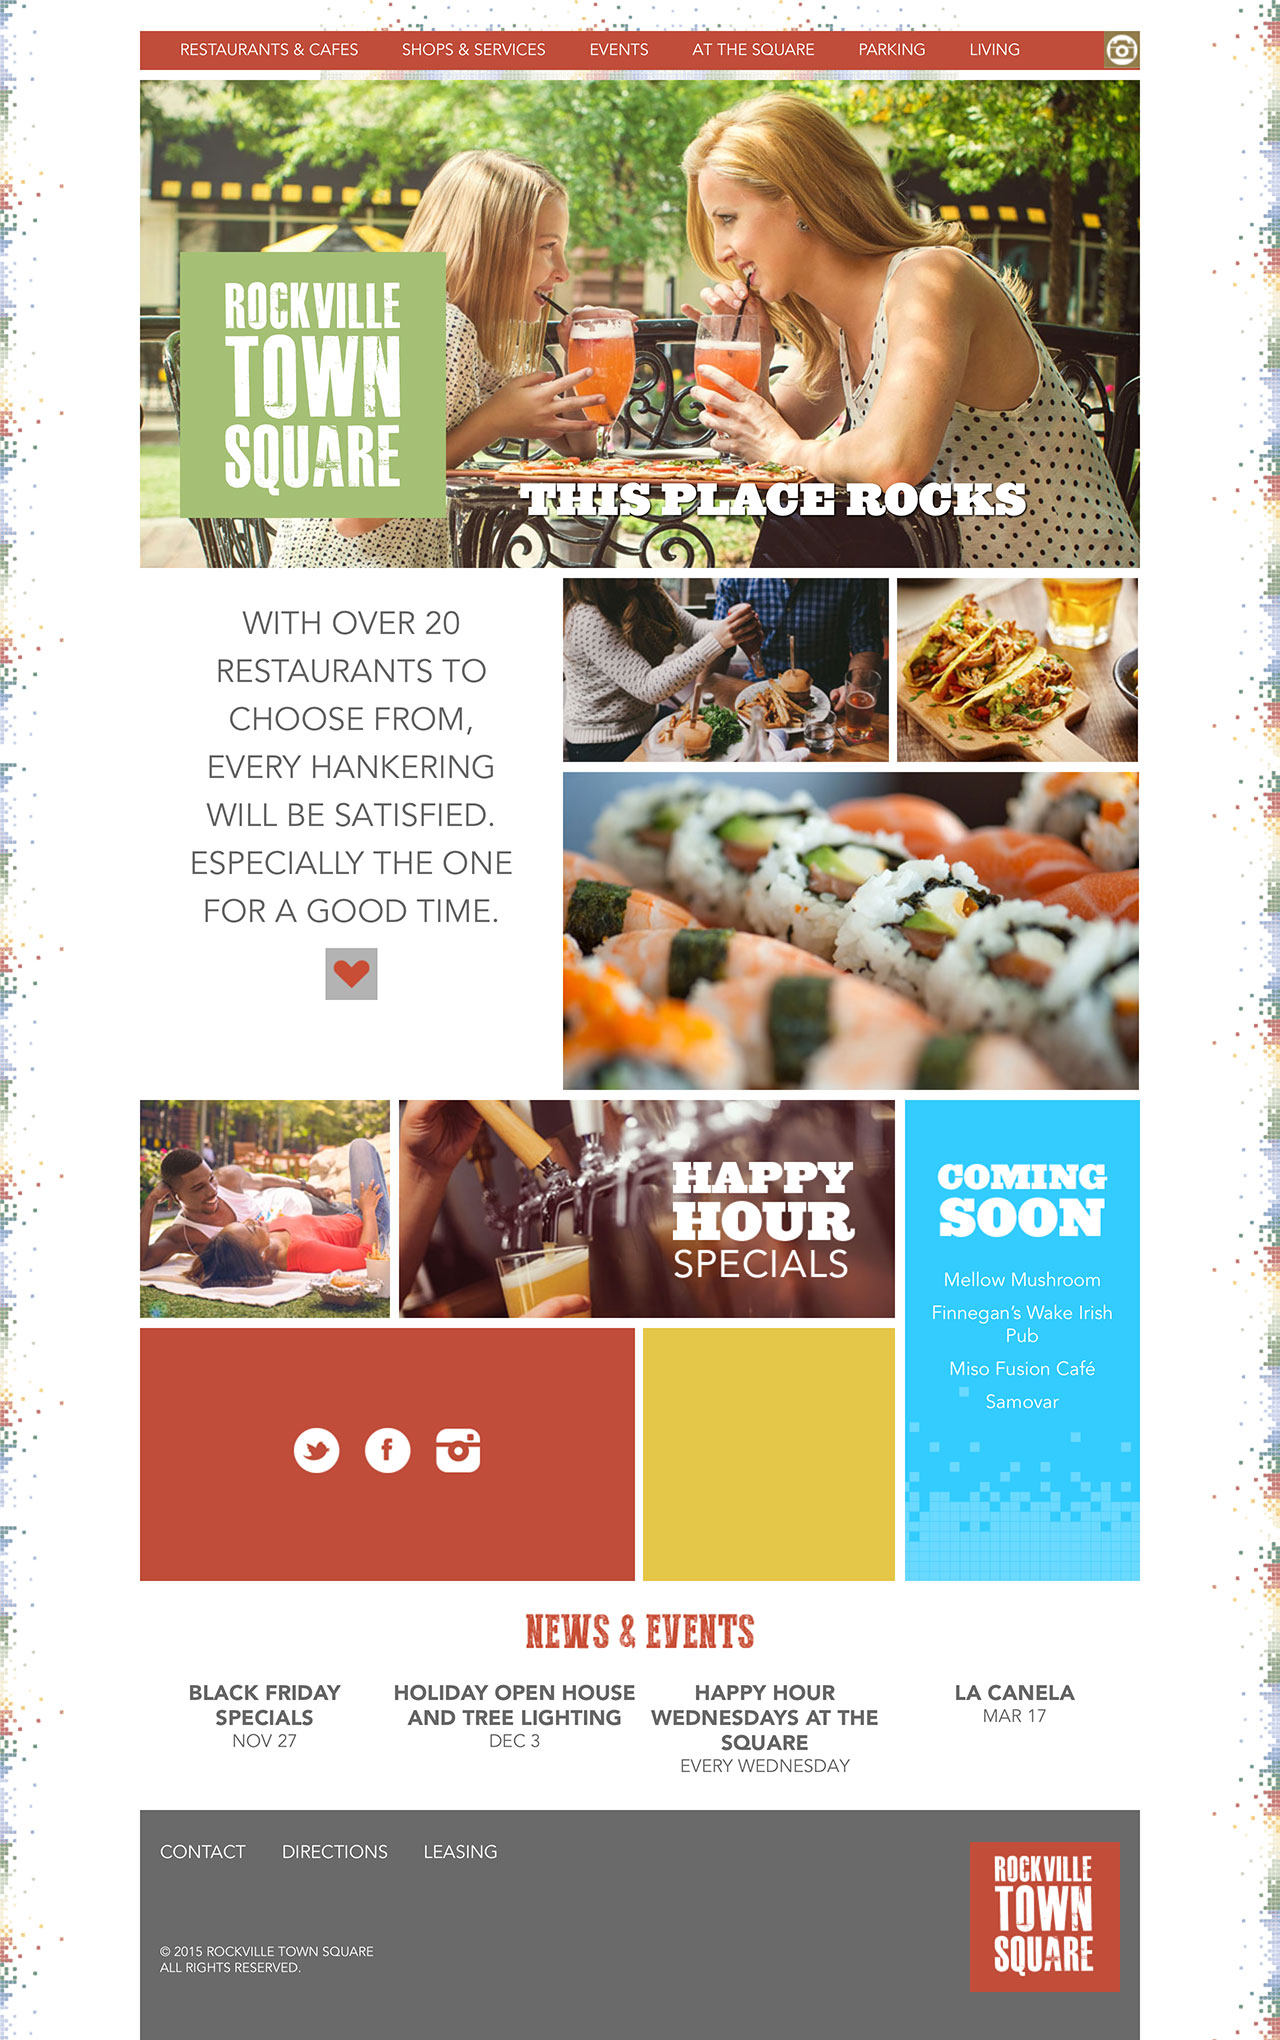 Rockville Town Square Website